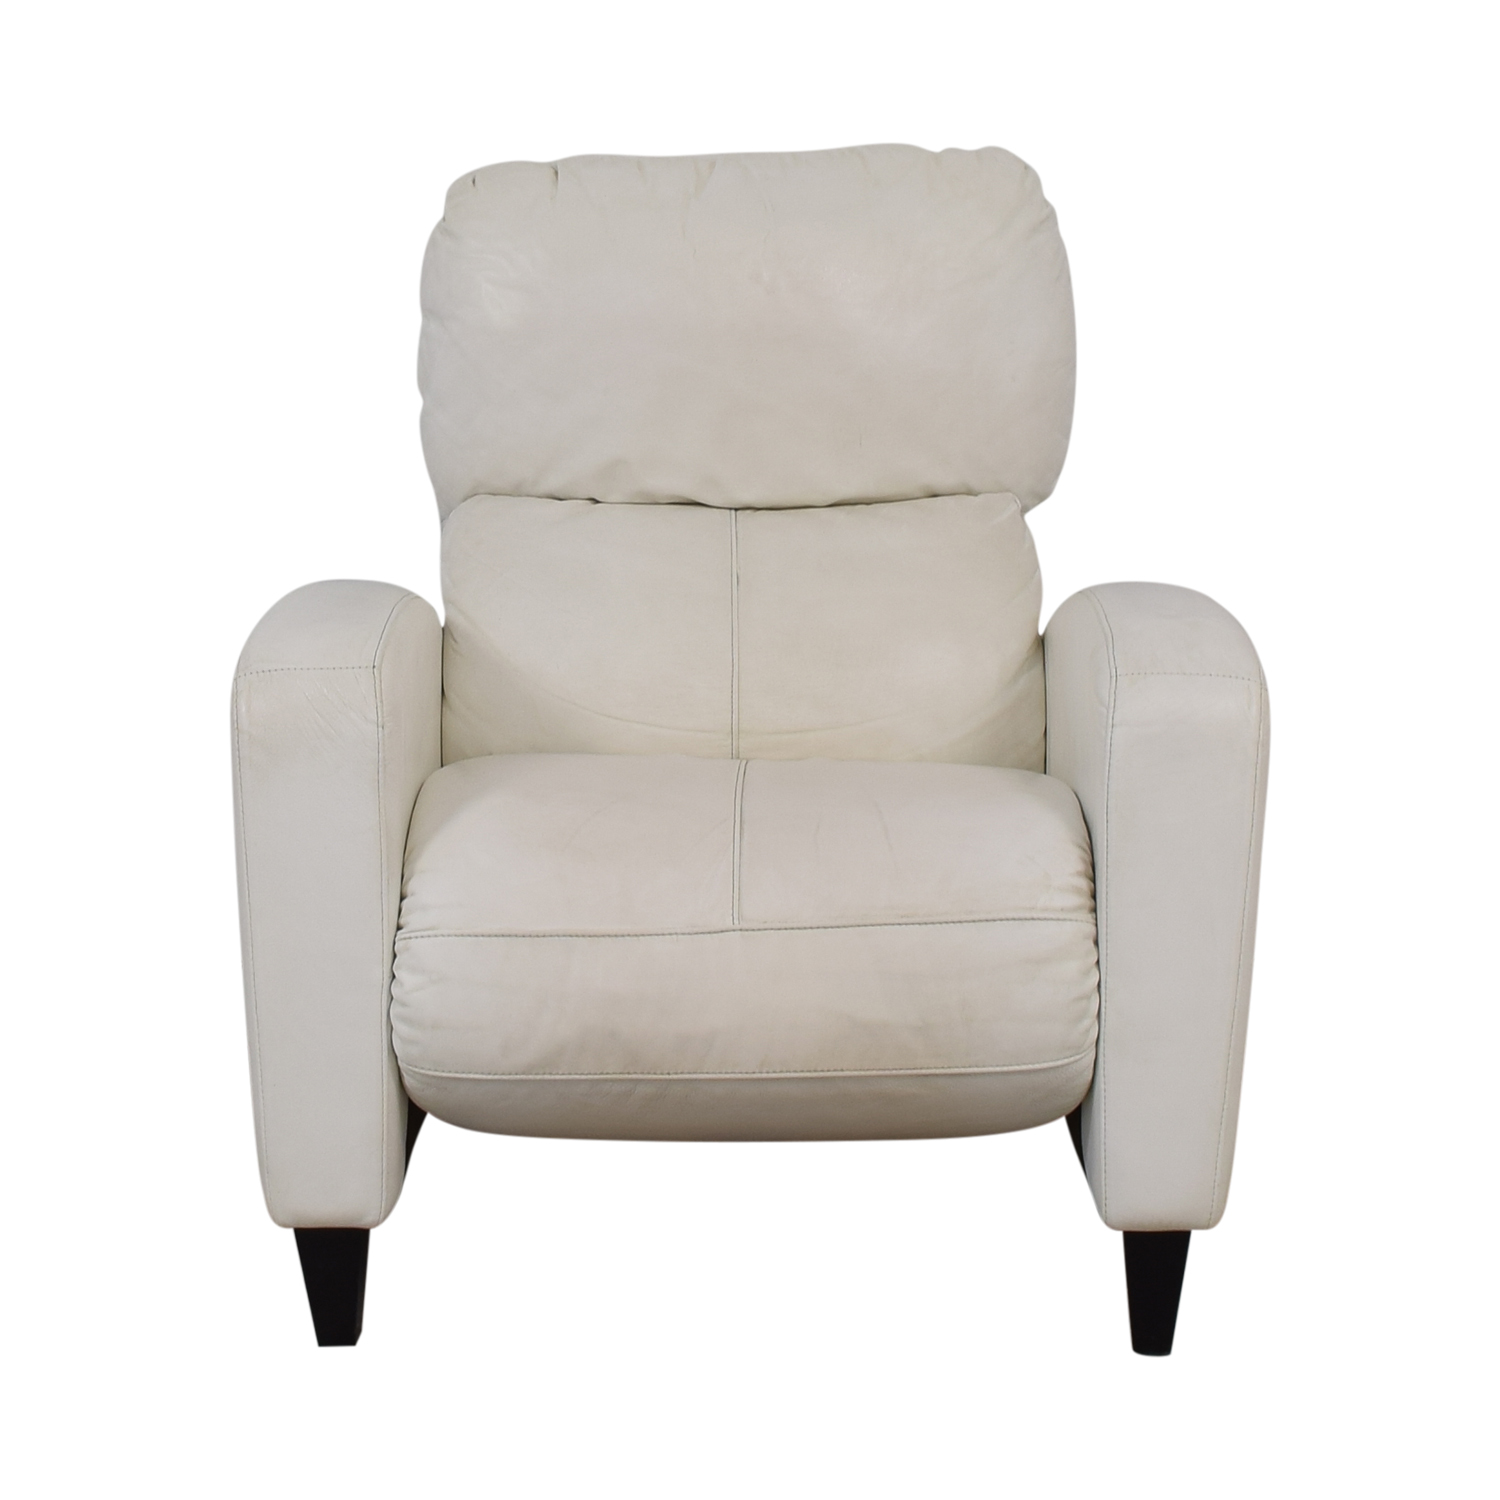 American Leather American Leather White Leather Recliner coupon